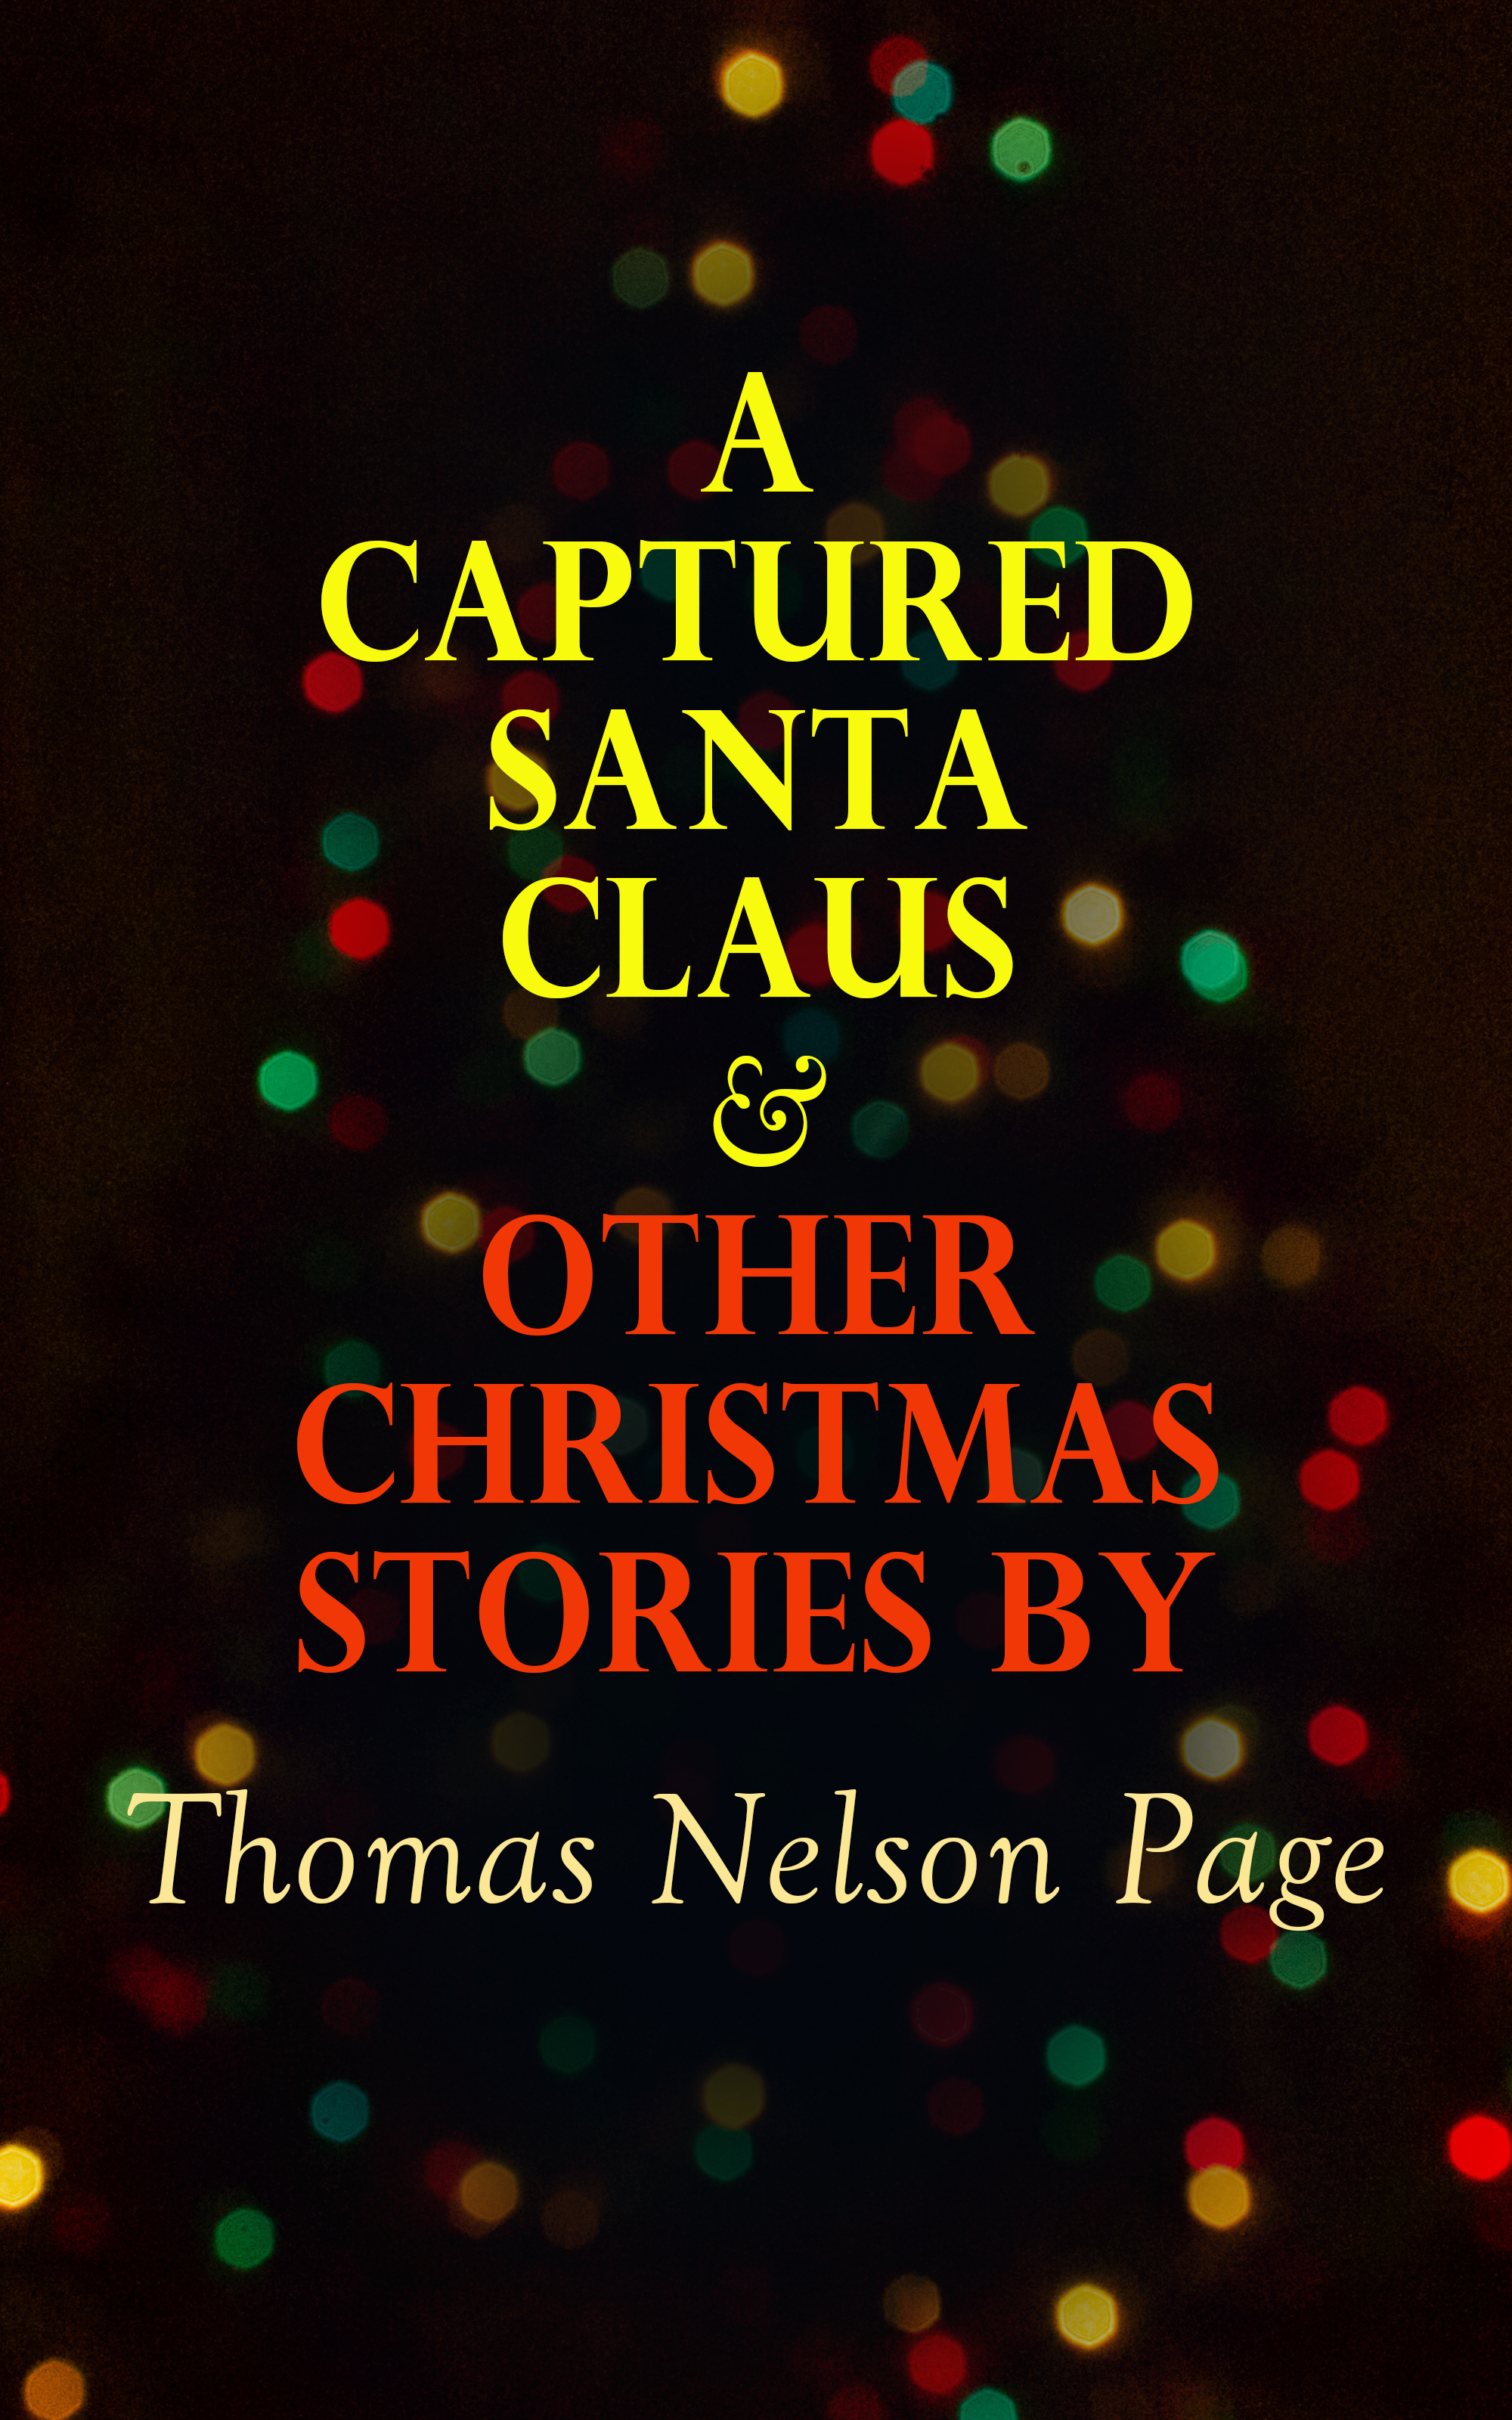 Thomas Nelson Page A Captured Santa Claus & Other Christmas Stories by Thomas Nelson Page sitemap html page 10 page 9 page 2 page 5 page 7 page 10